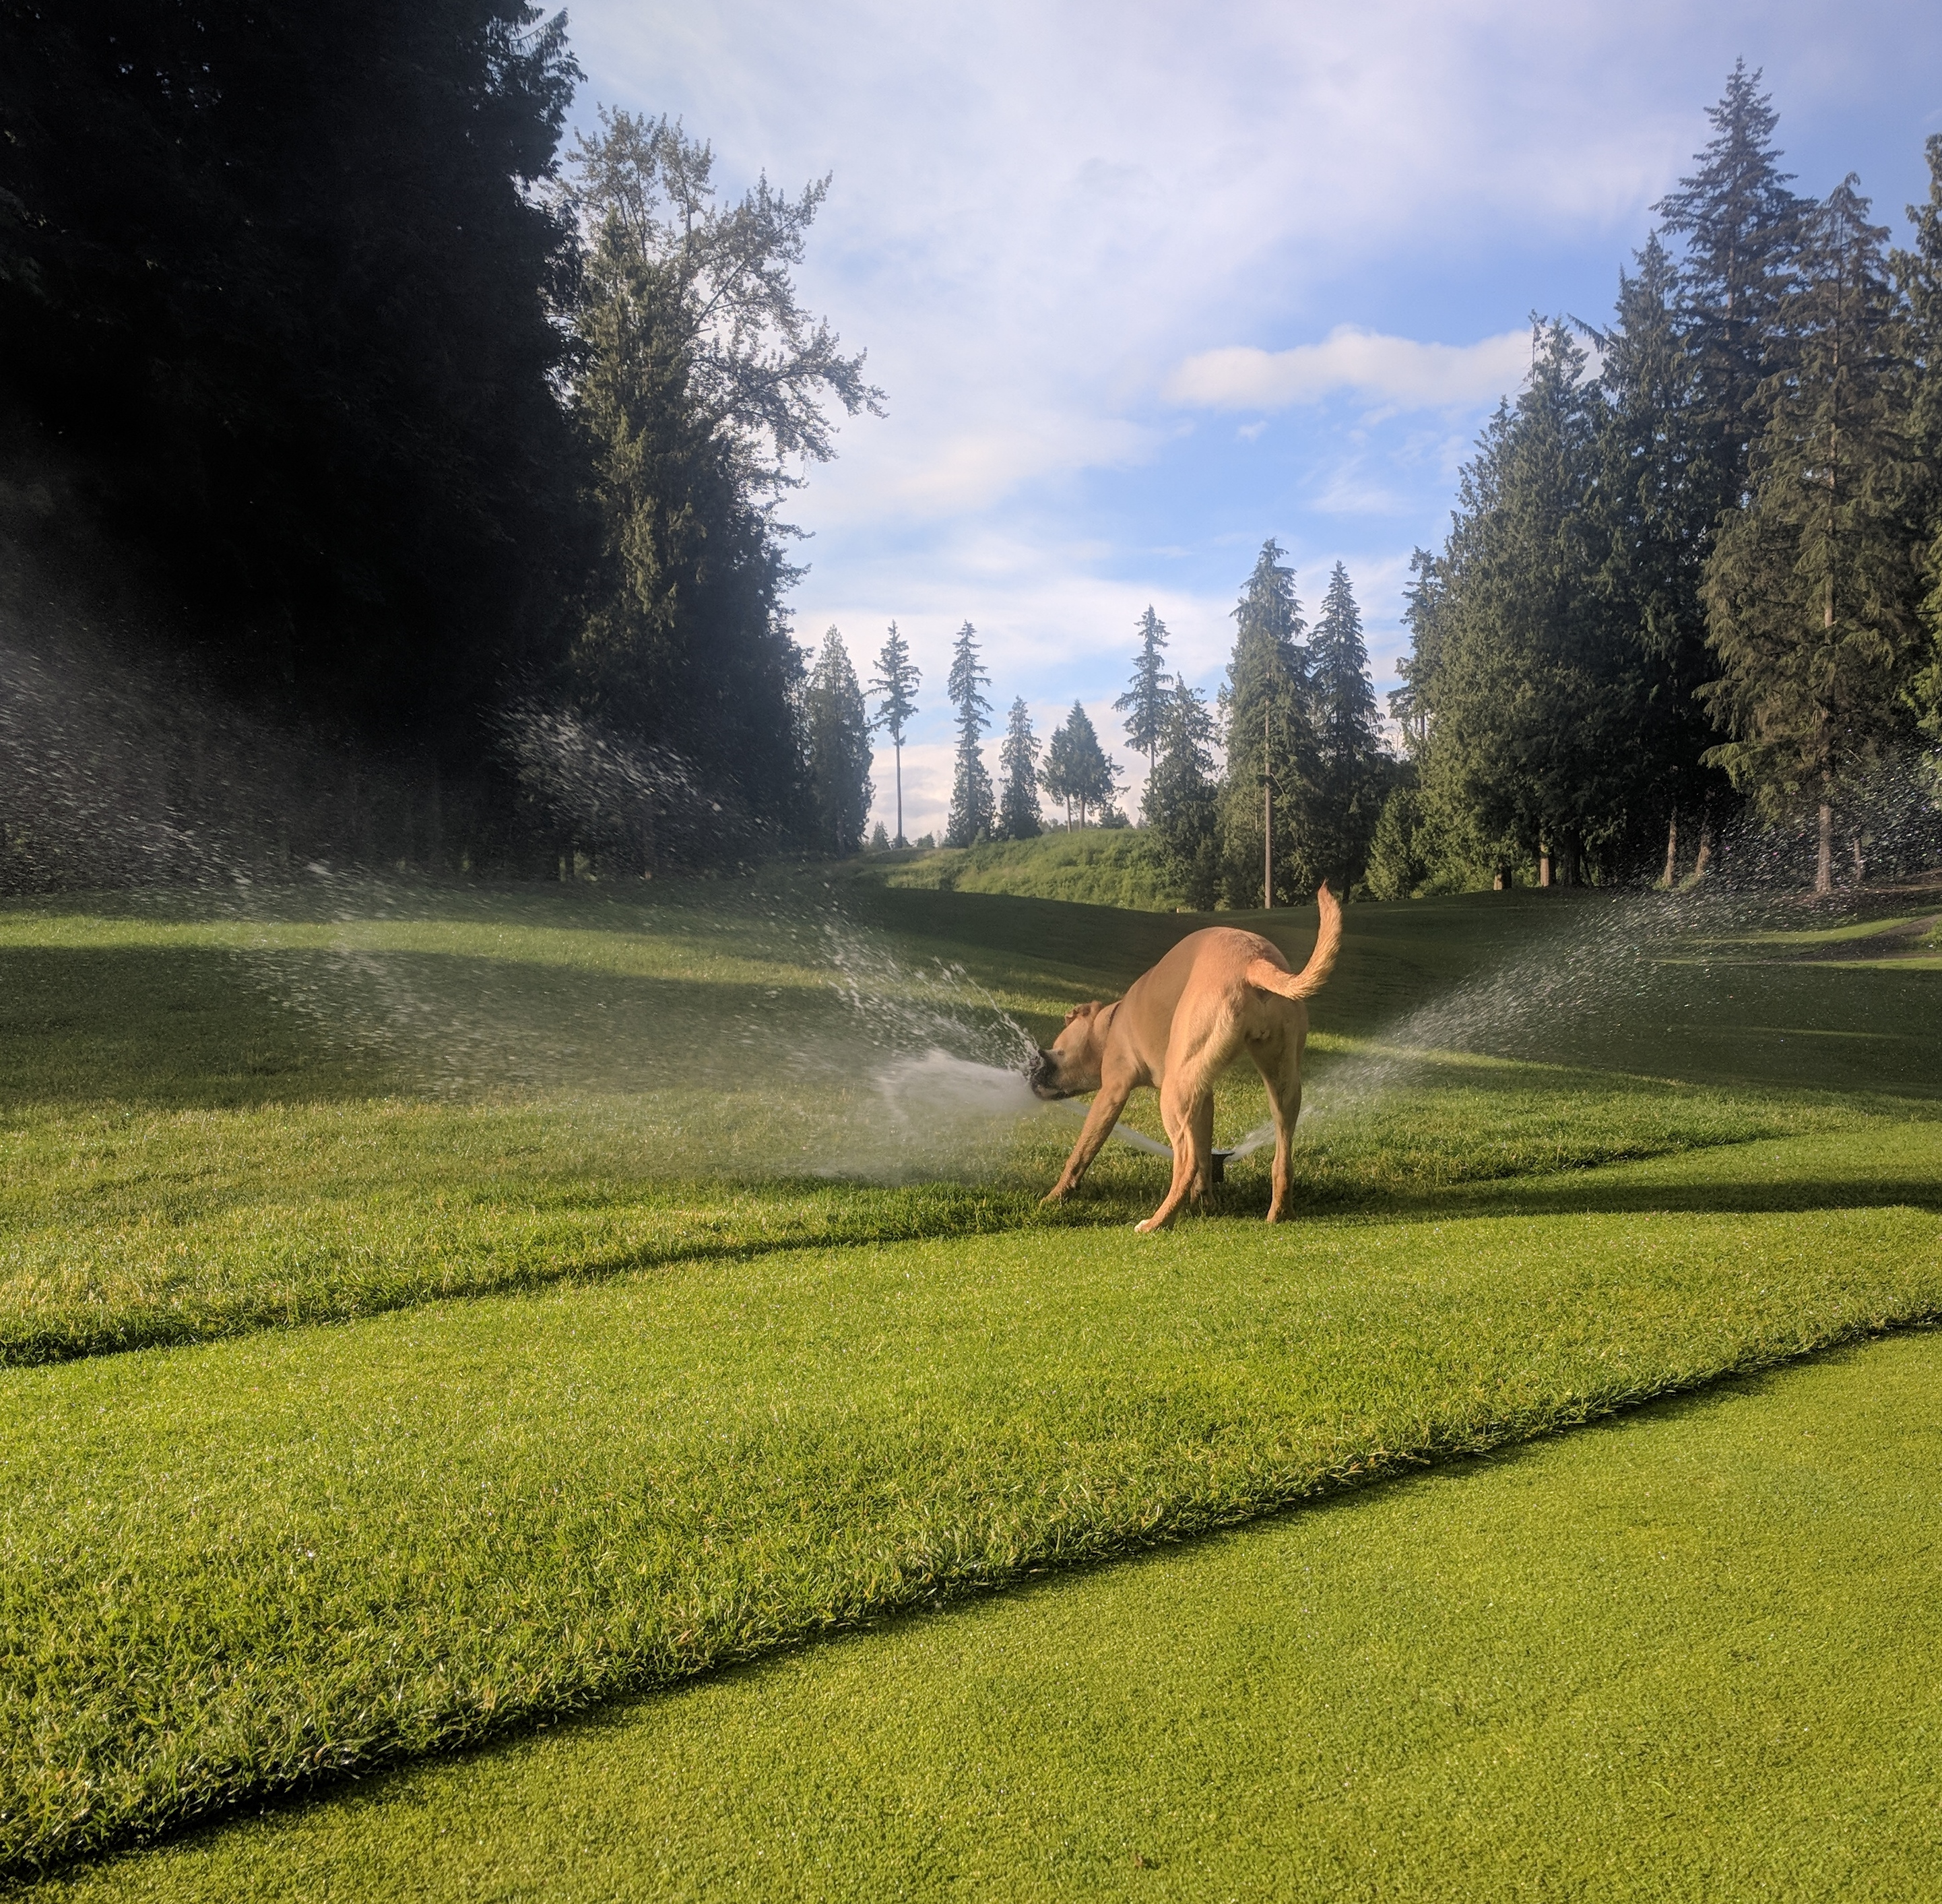 Dog playing in a sprinkler